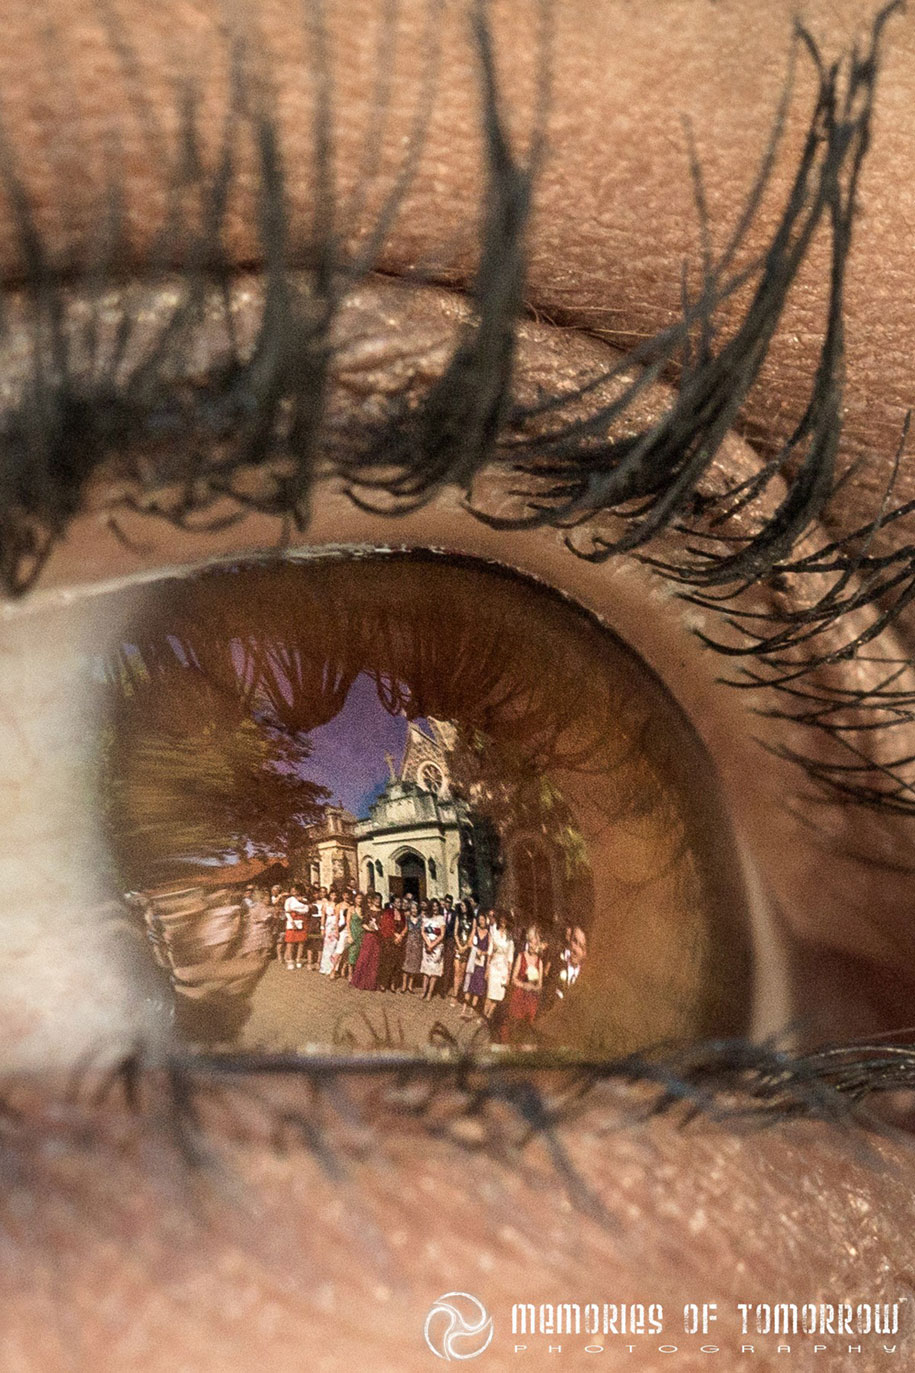 eyescapes-photography-eye-reflection-wedding-photography-peter-adams-shawn-9 (12)